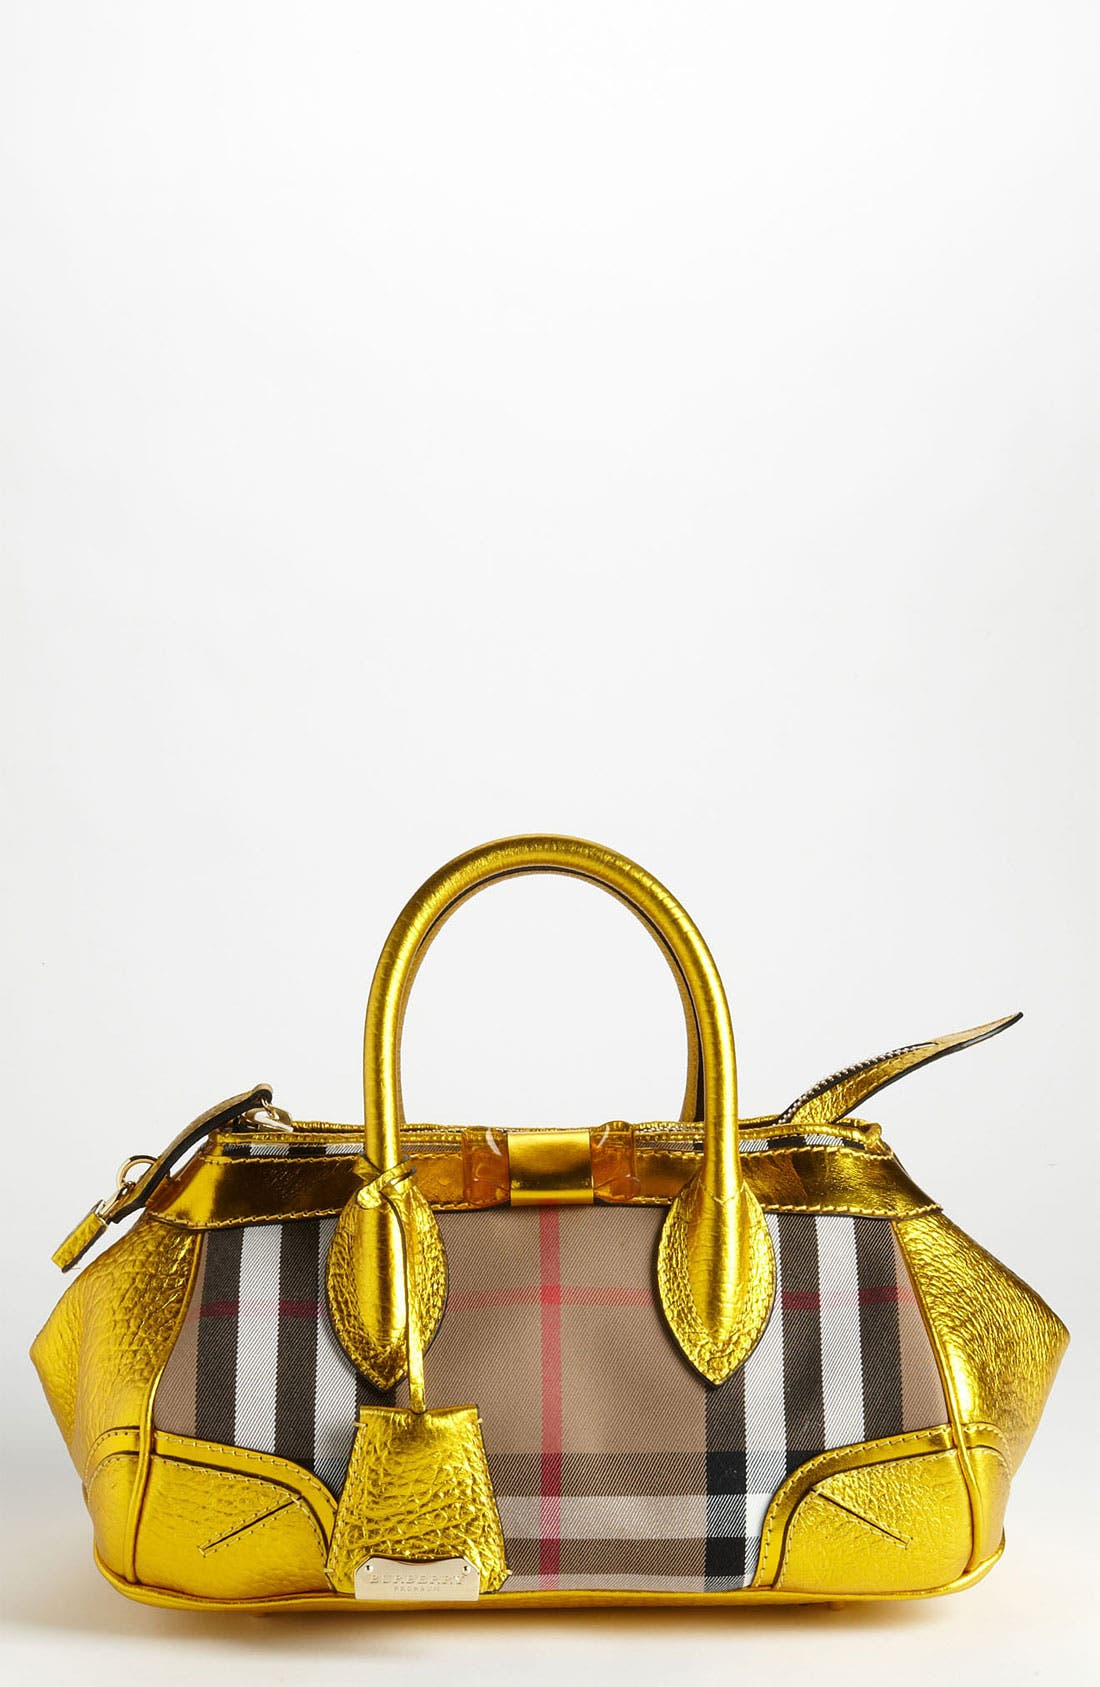 Main Image - Burberry Prorsum 'Blaze' House Check Handbag